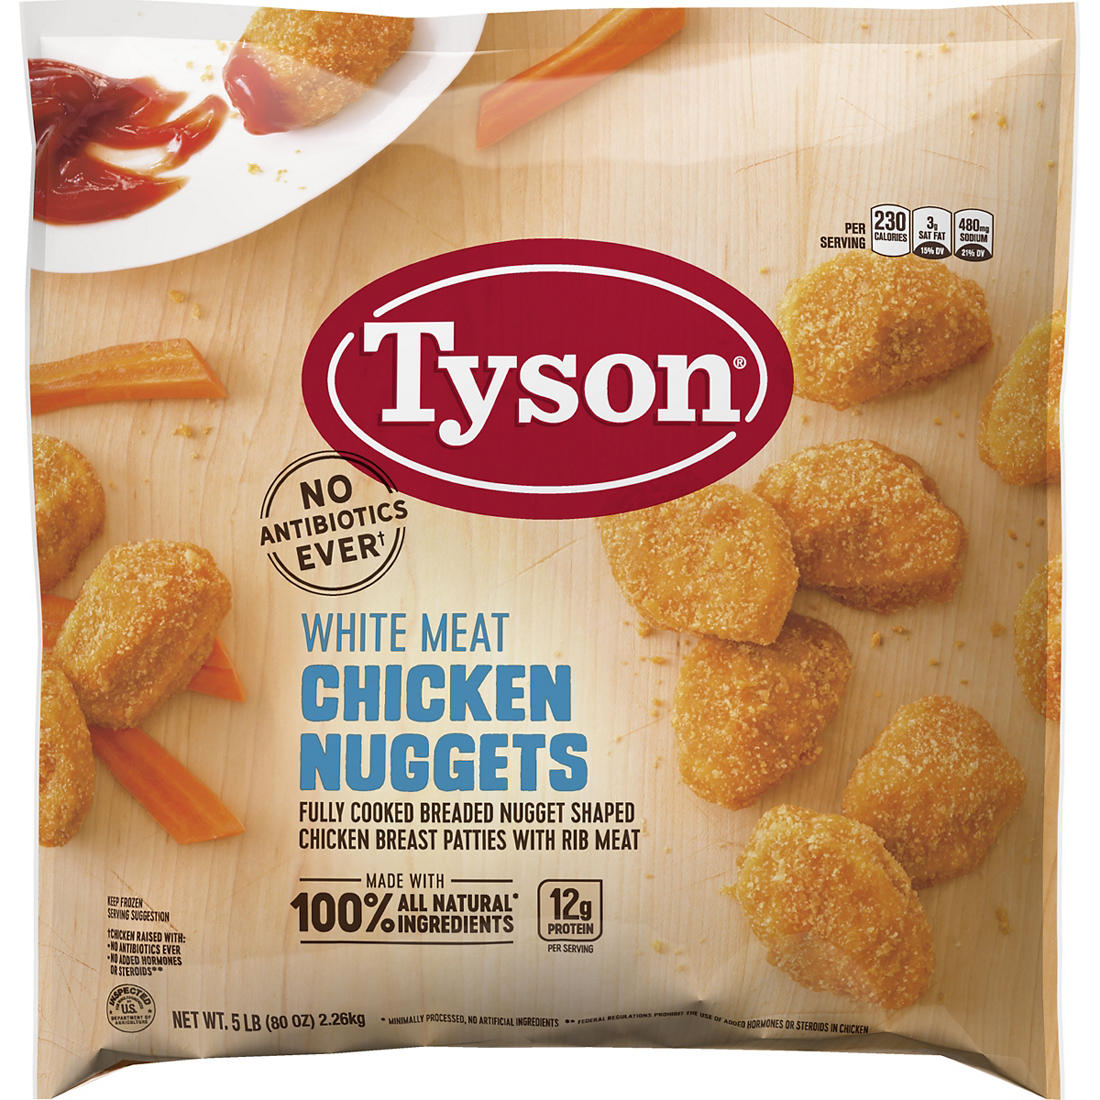 Natural White Meat Chicken Nuggets